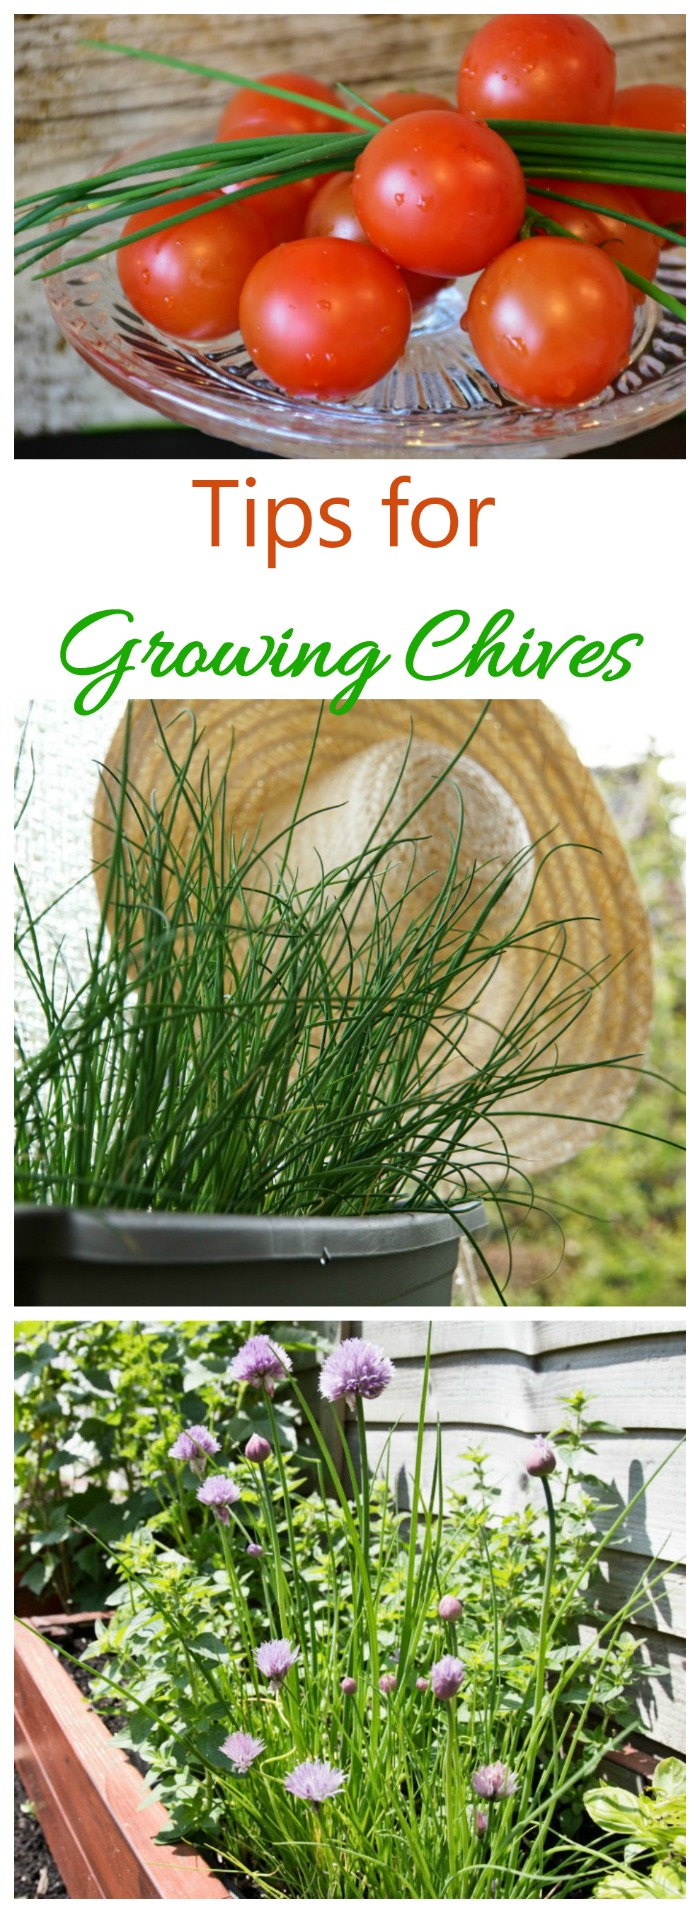 Growing chives is easy. They can be grown in the ground or in pots and containers. See my tips for growing this essential kitchen herb.